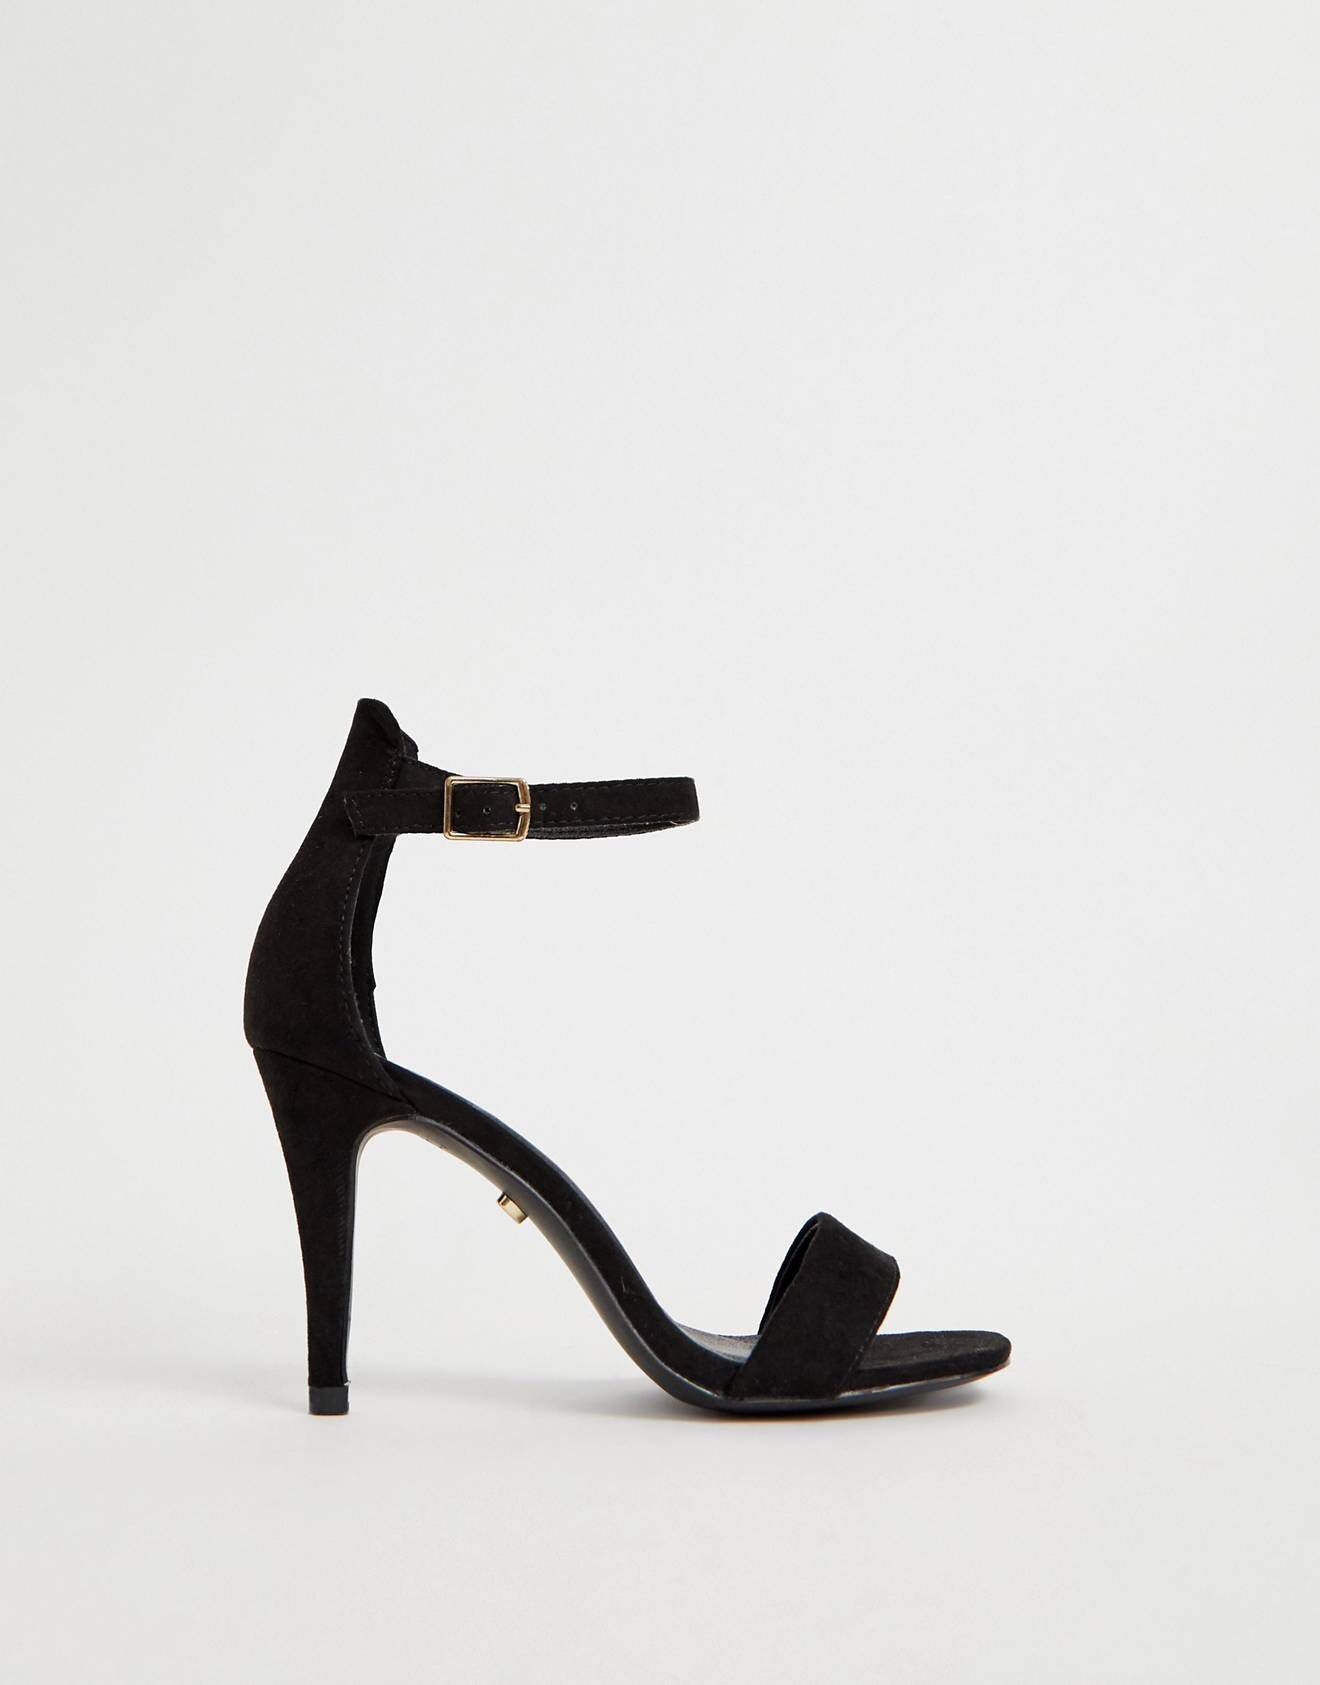 51a3c3e3dbb Oasis barely there heeled sandals in black in 2019 | Styles for Days ...